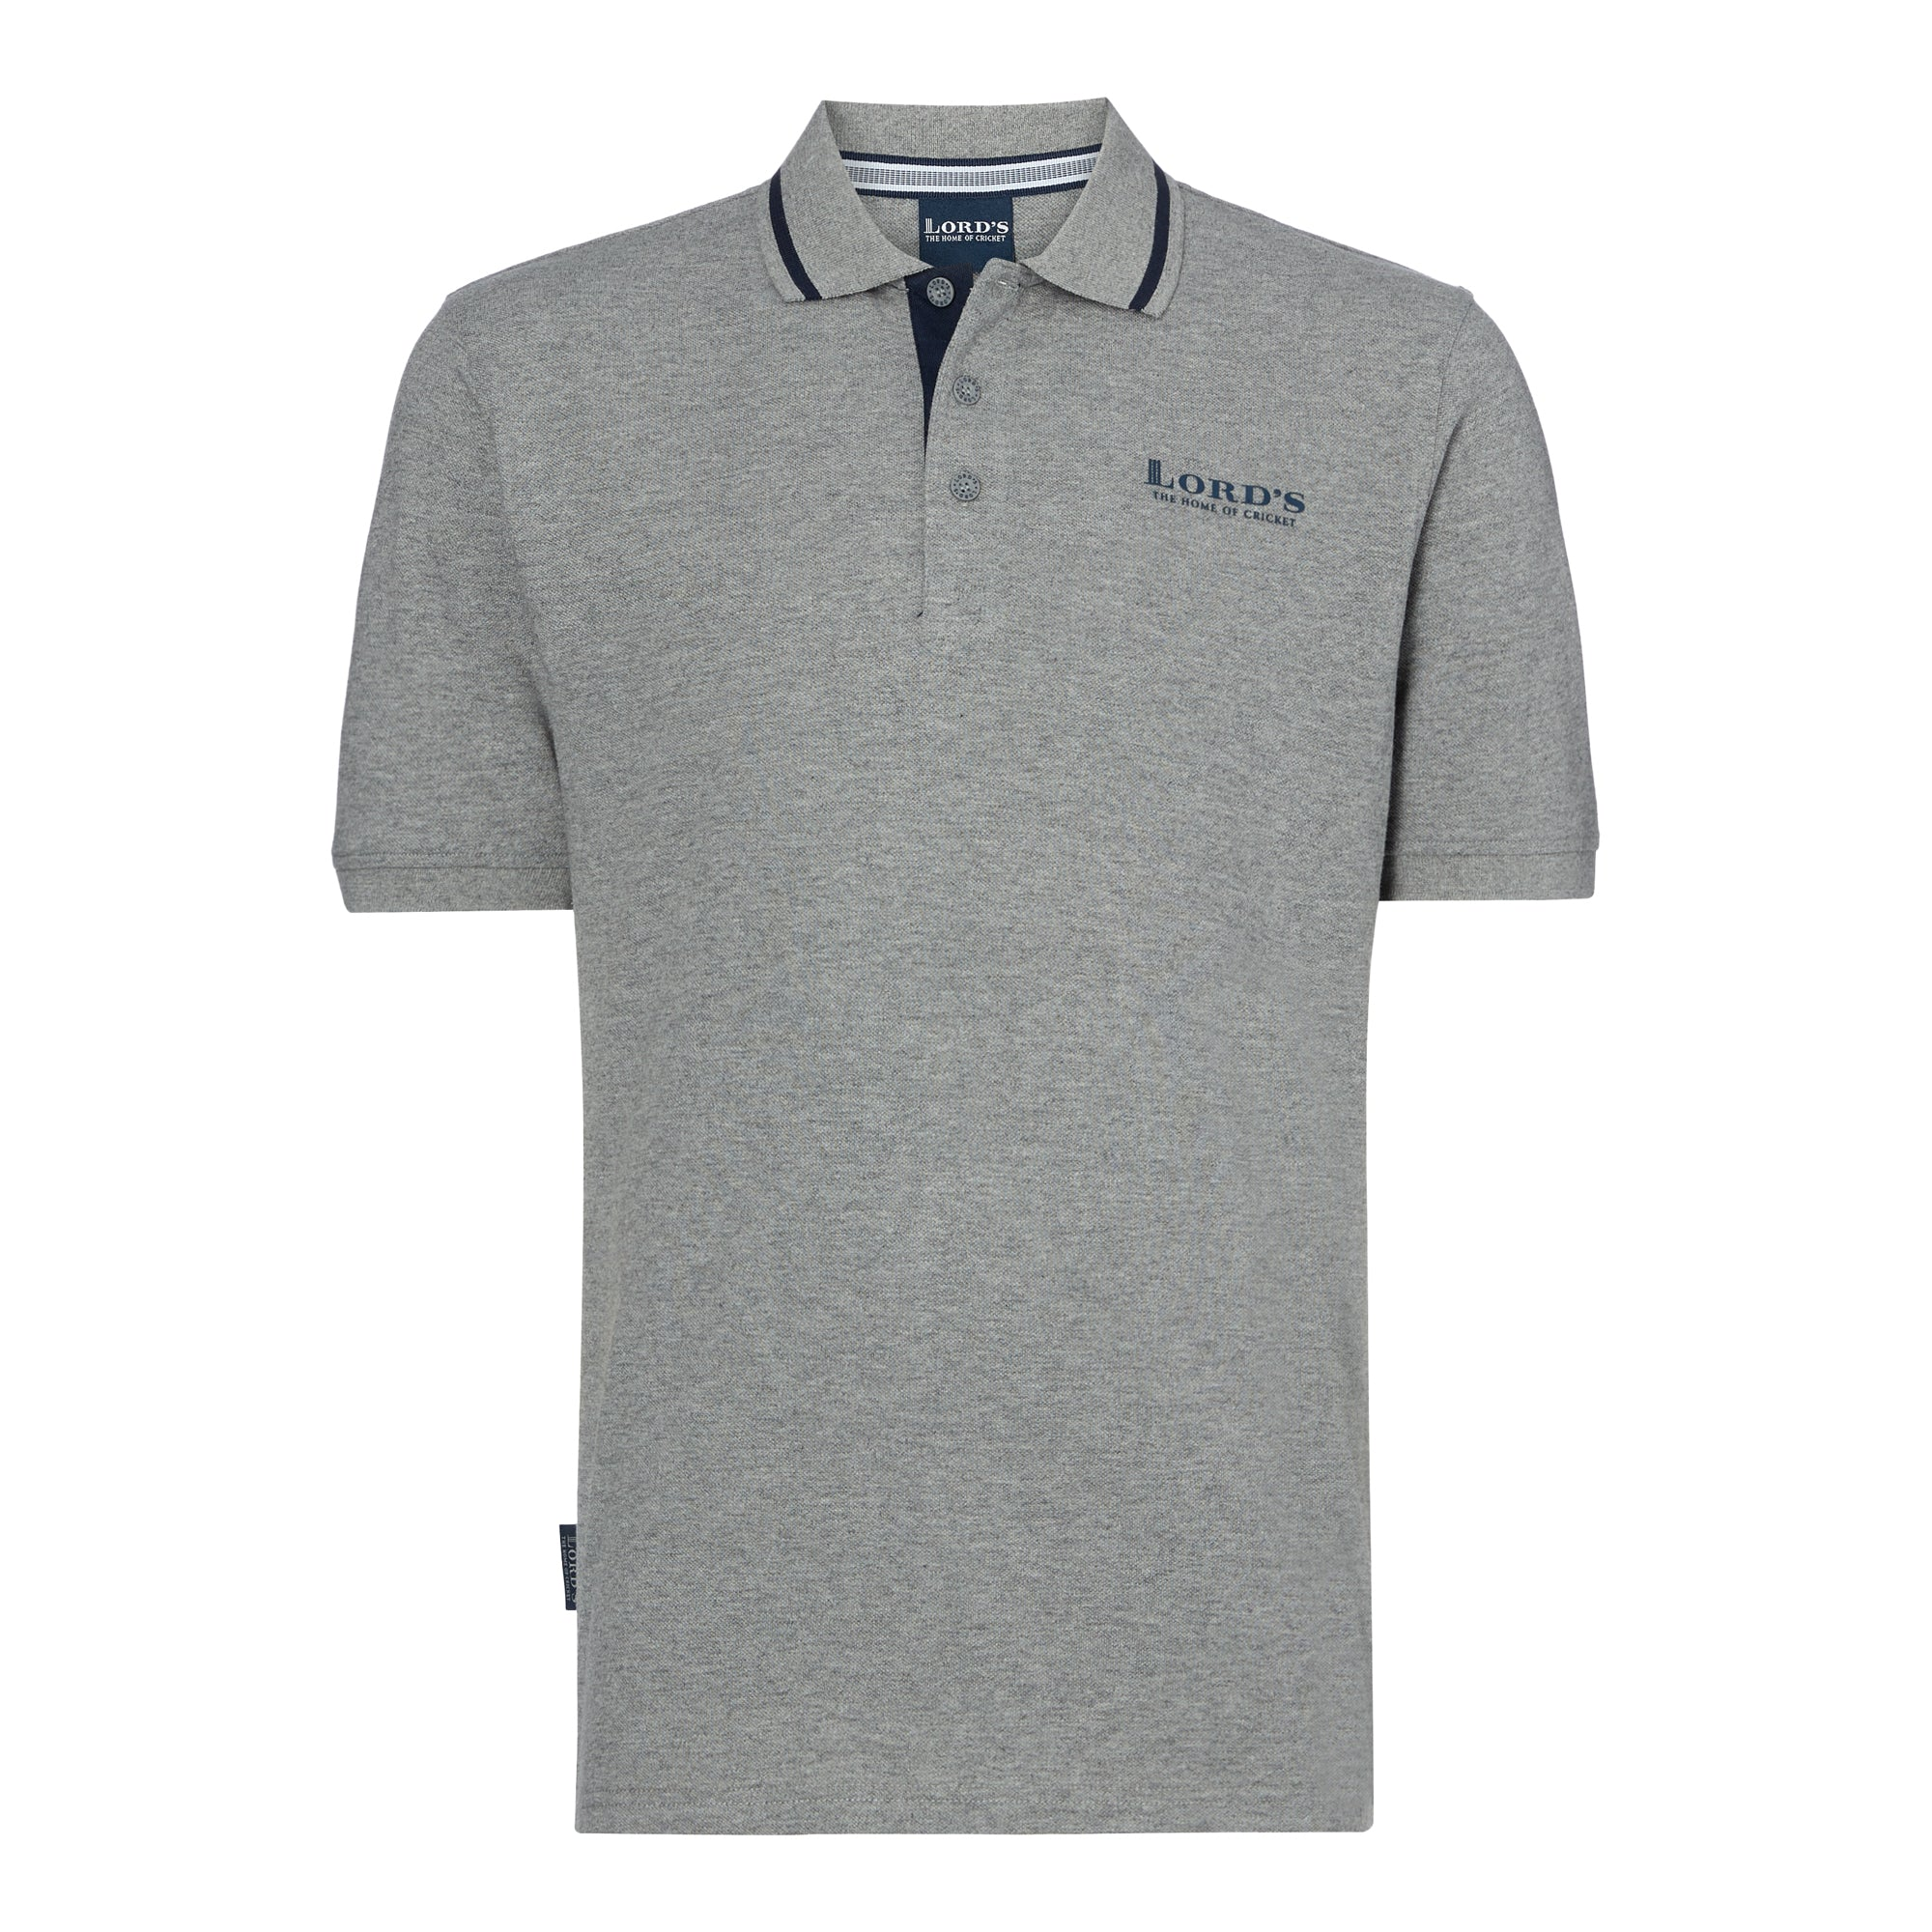 LORD'S PIQUÉ POLO SHIRT GREY/NAVY